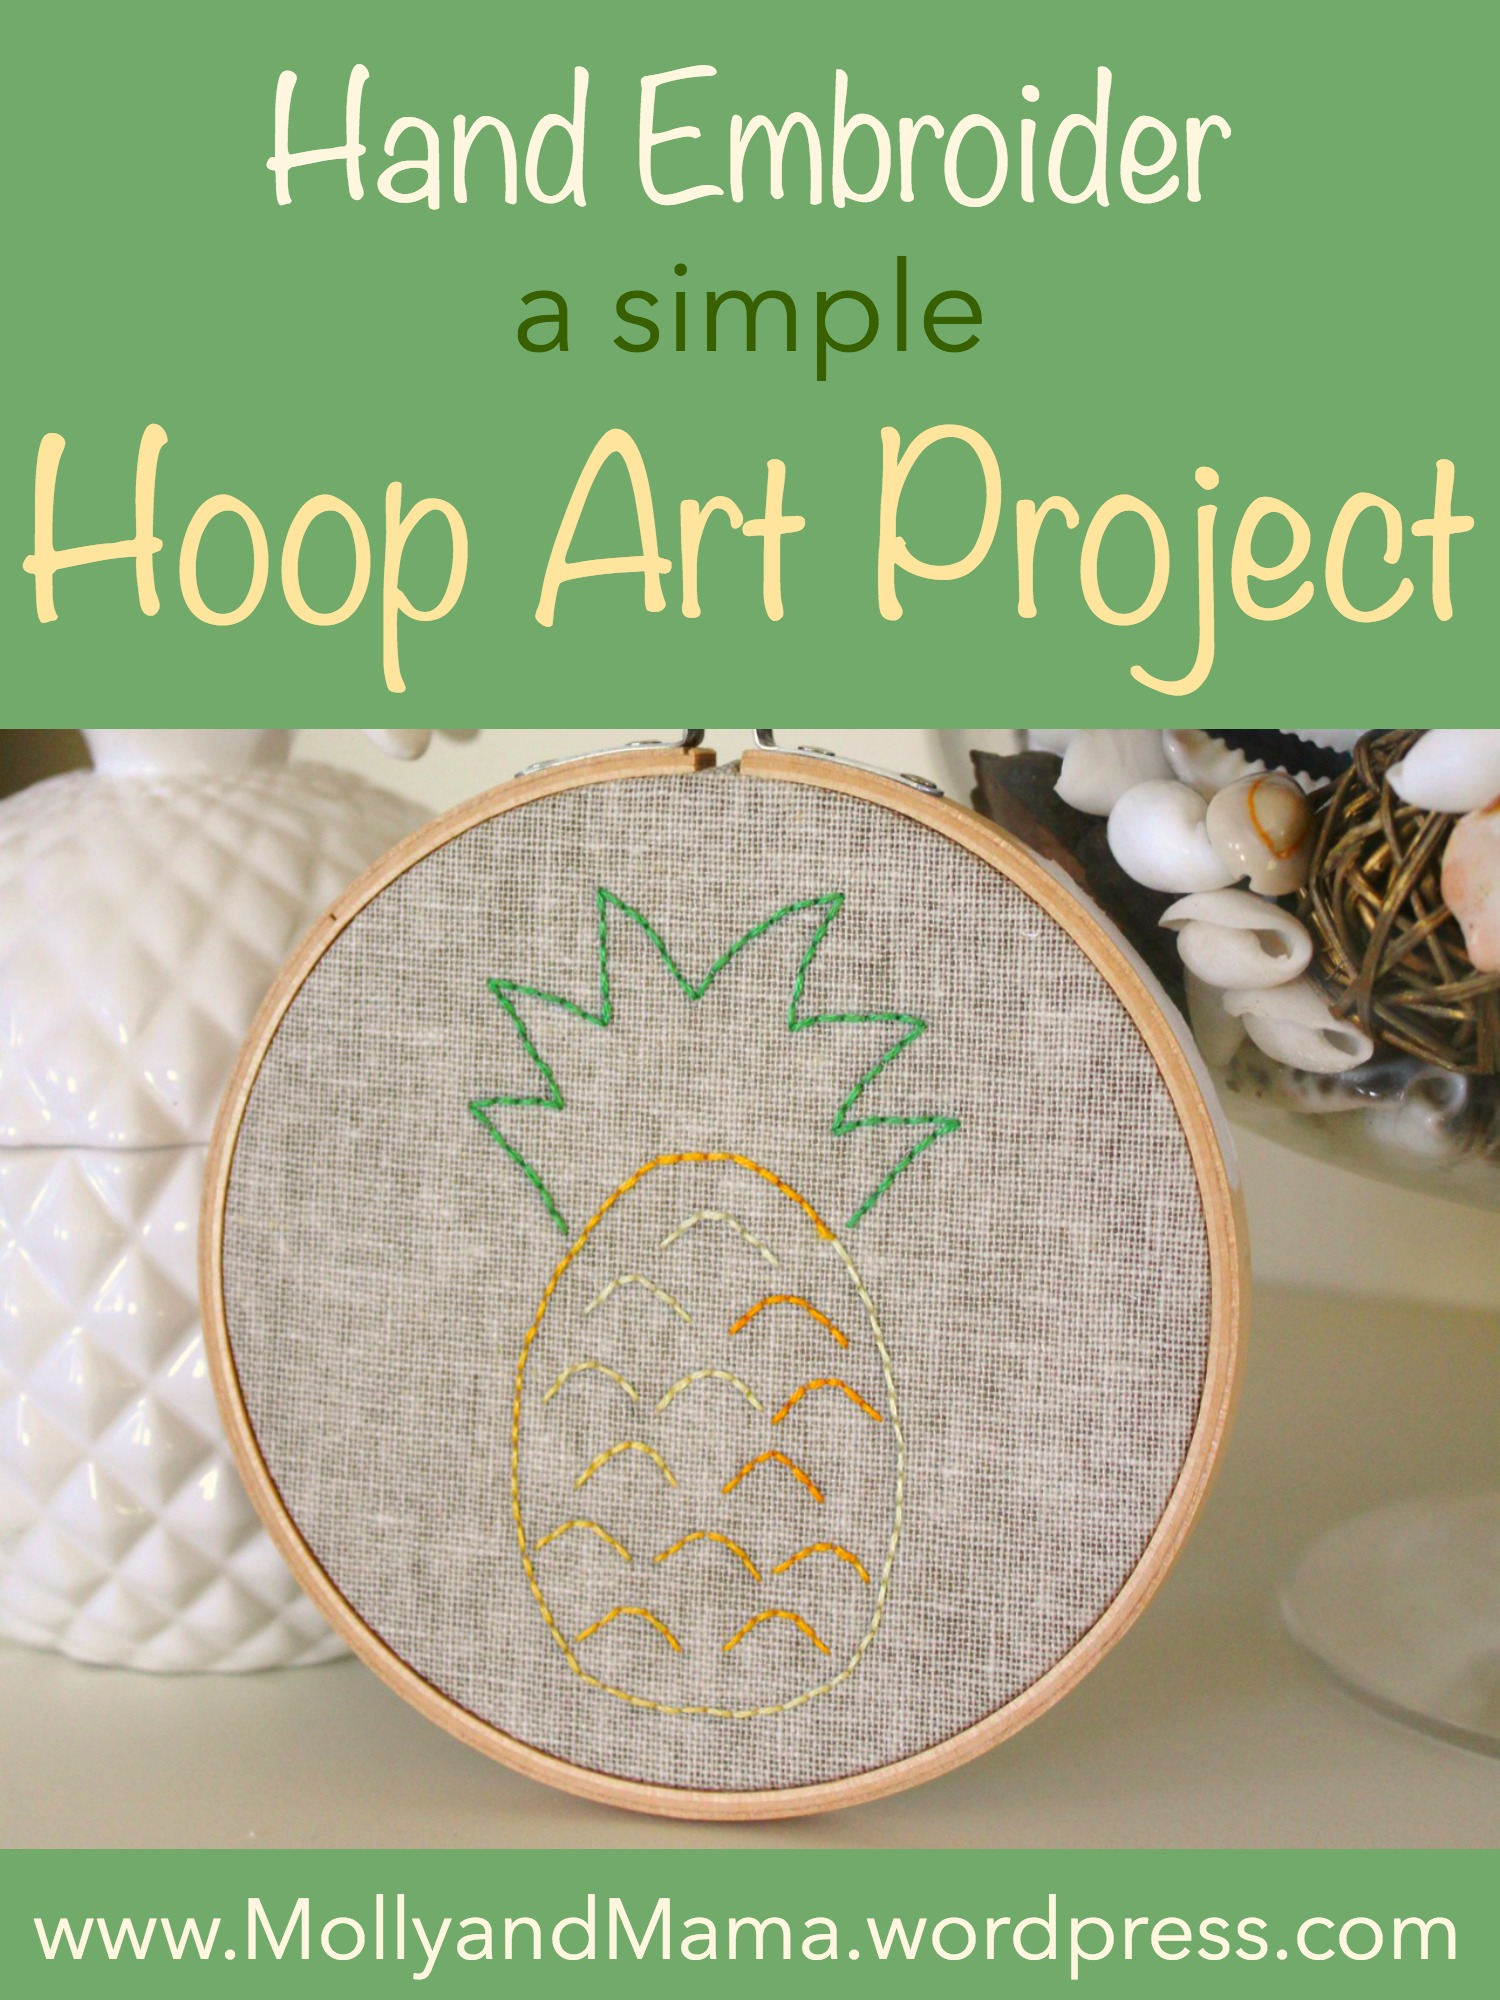 Hand Embroider a simple Hoop Art Project by Molly and Mama